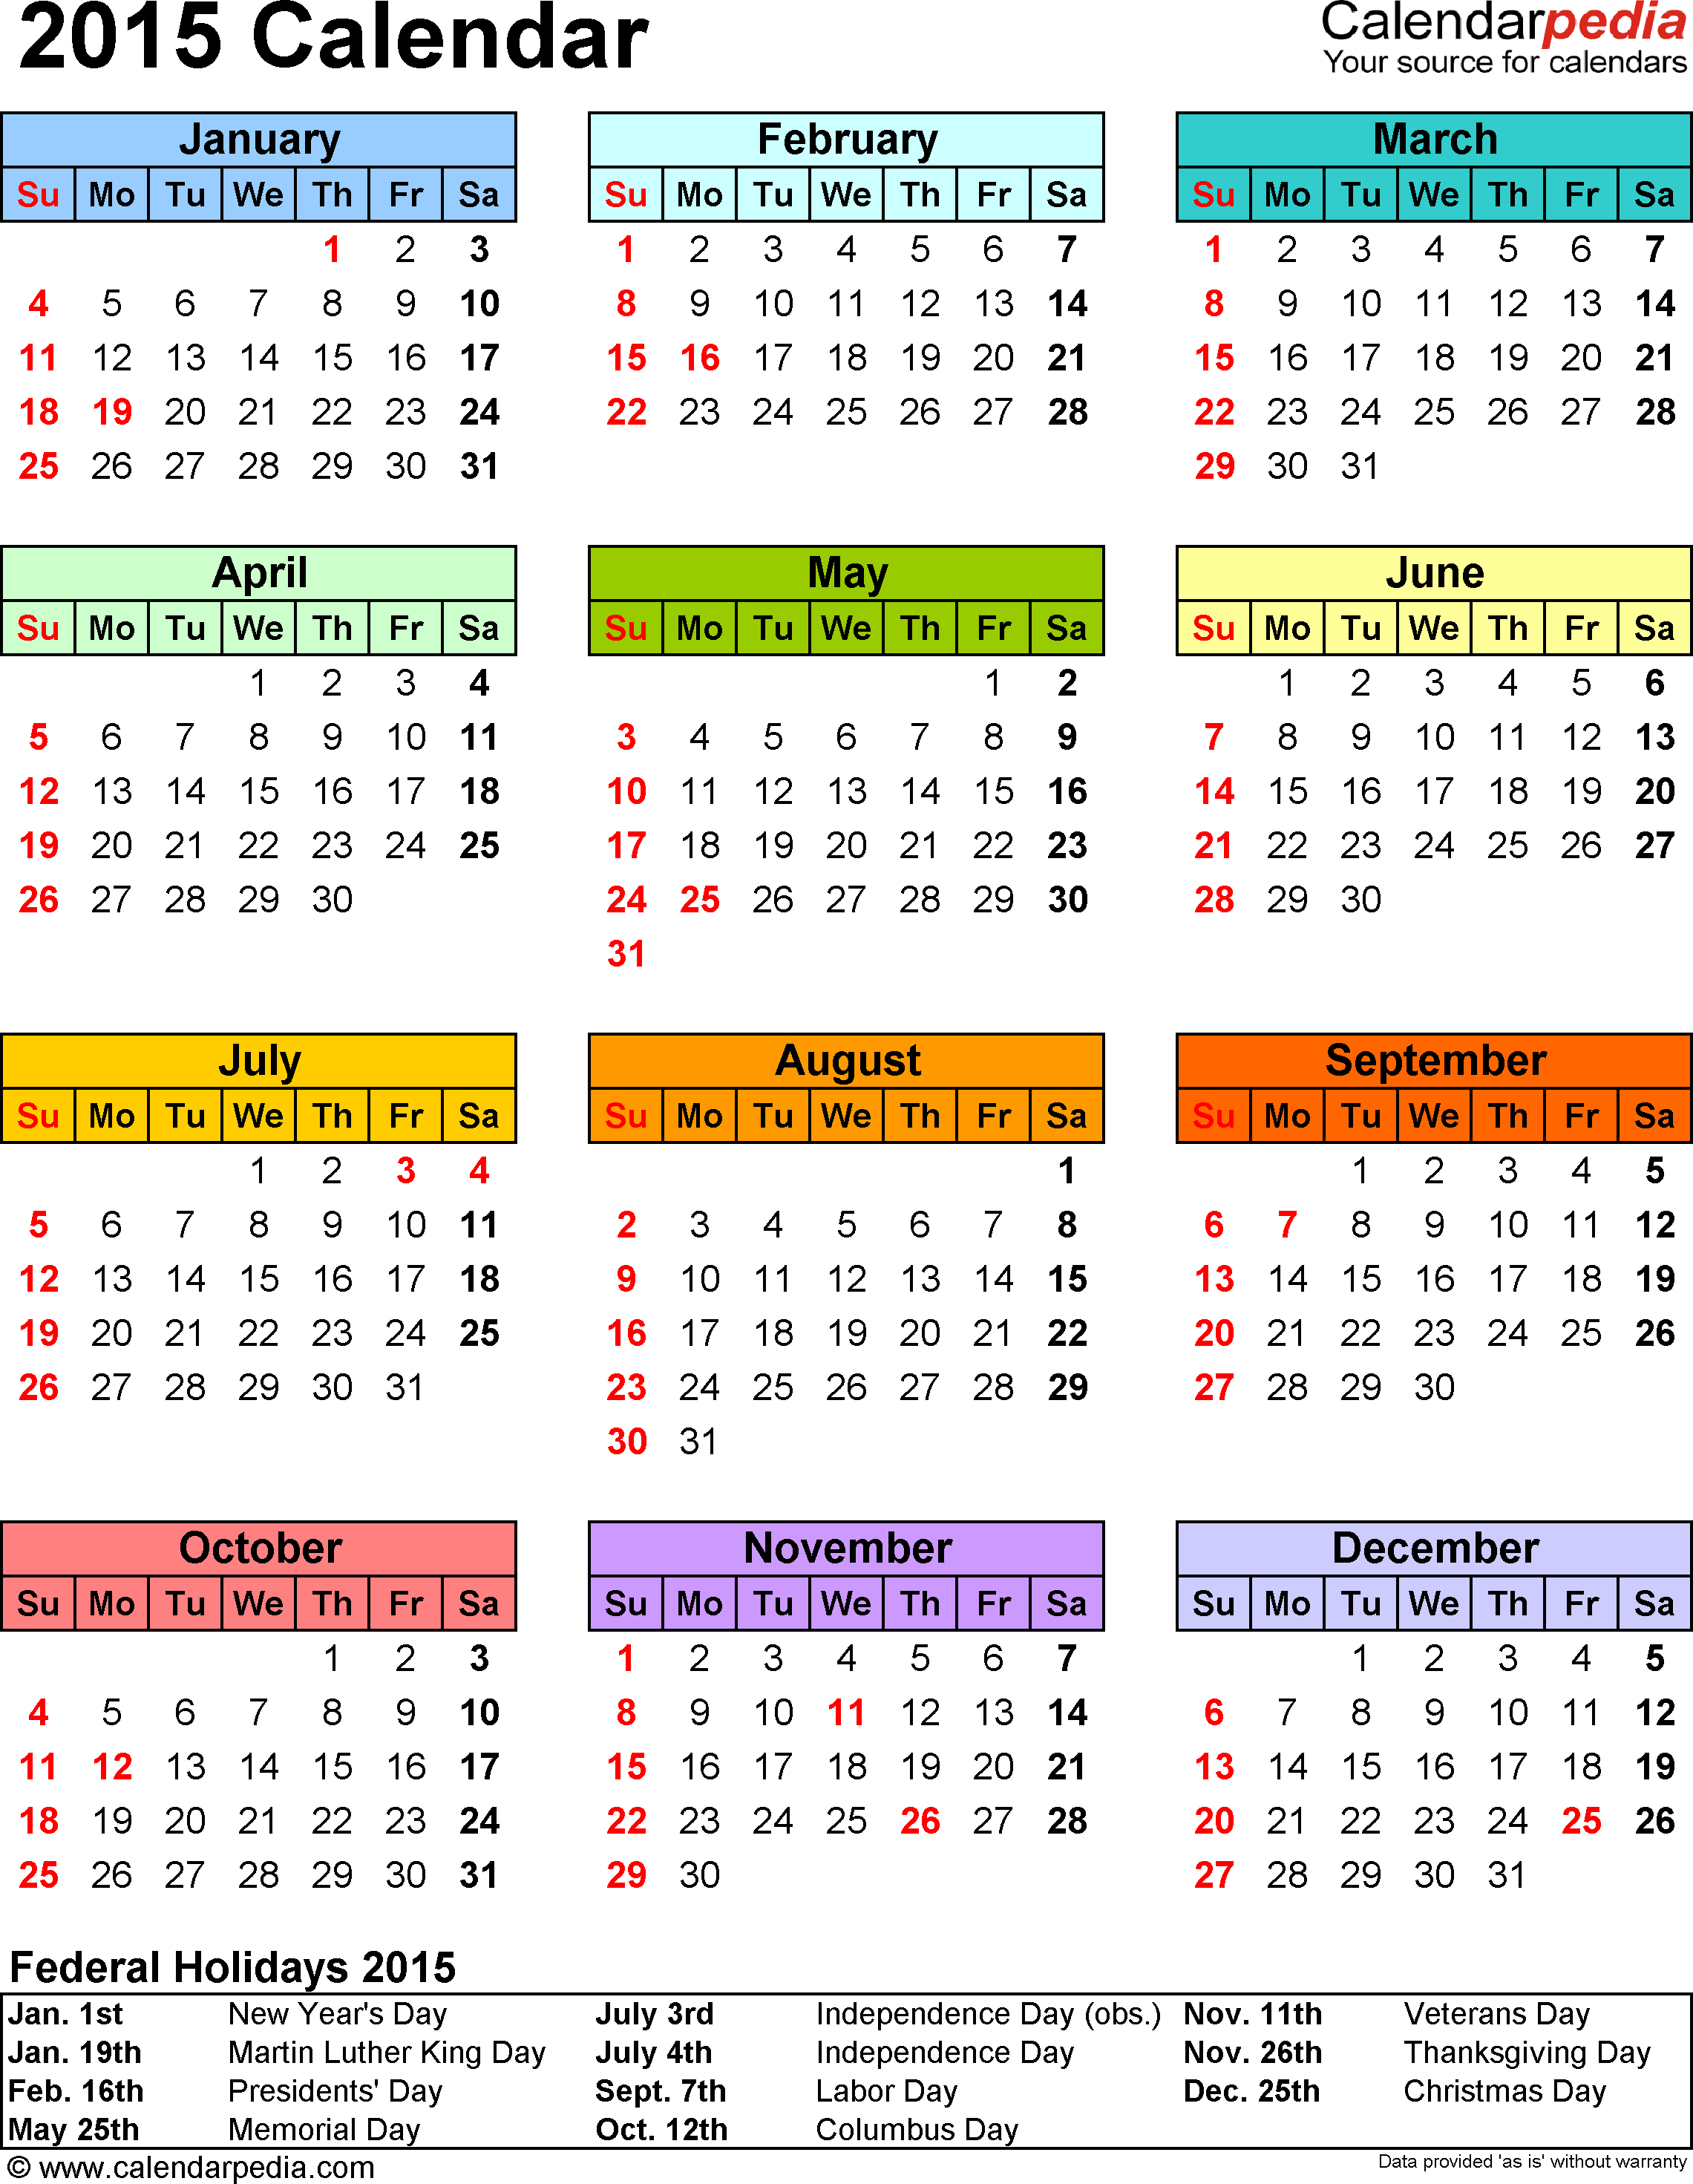 Weekly Calendar 2015 Printable  Bolan.horizonconsulting.co with regard to Printable Monthly Calendar 2015